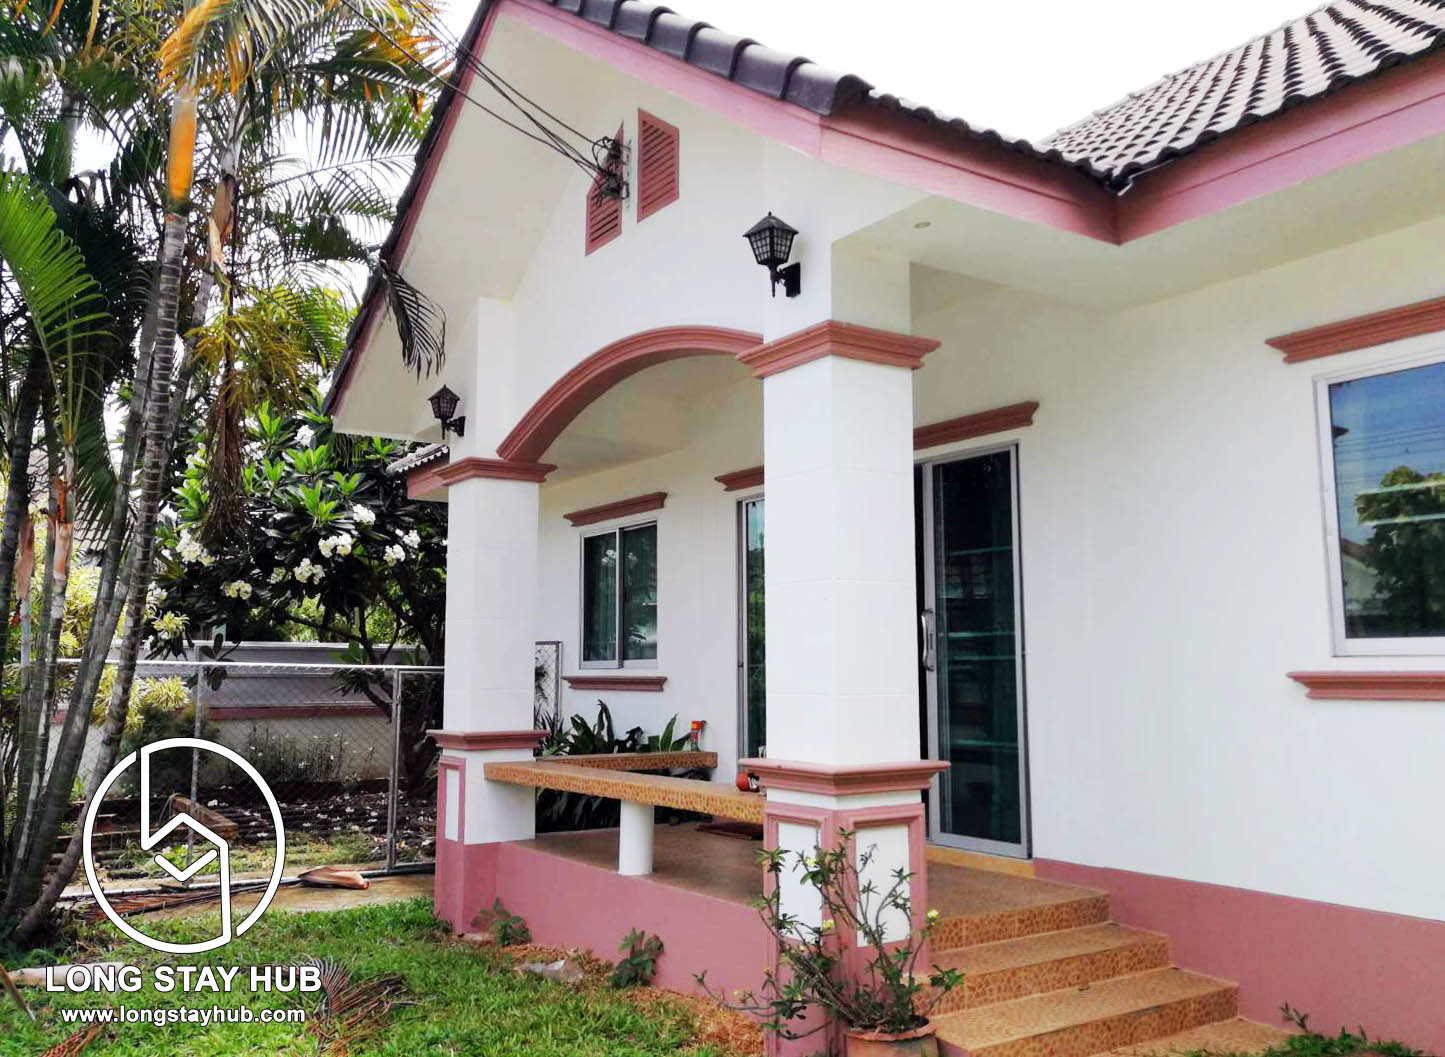 The one-storey garden house, pet friendly with quiet area near Meechoke Plaza and HomePro